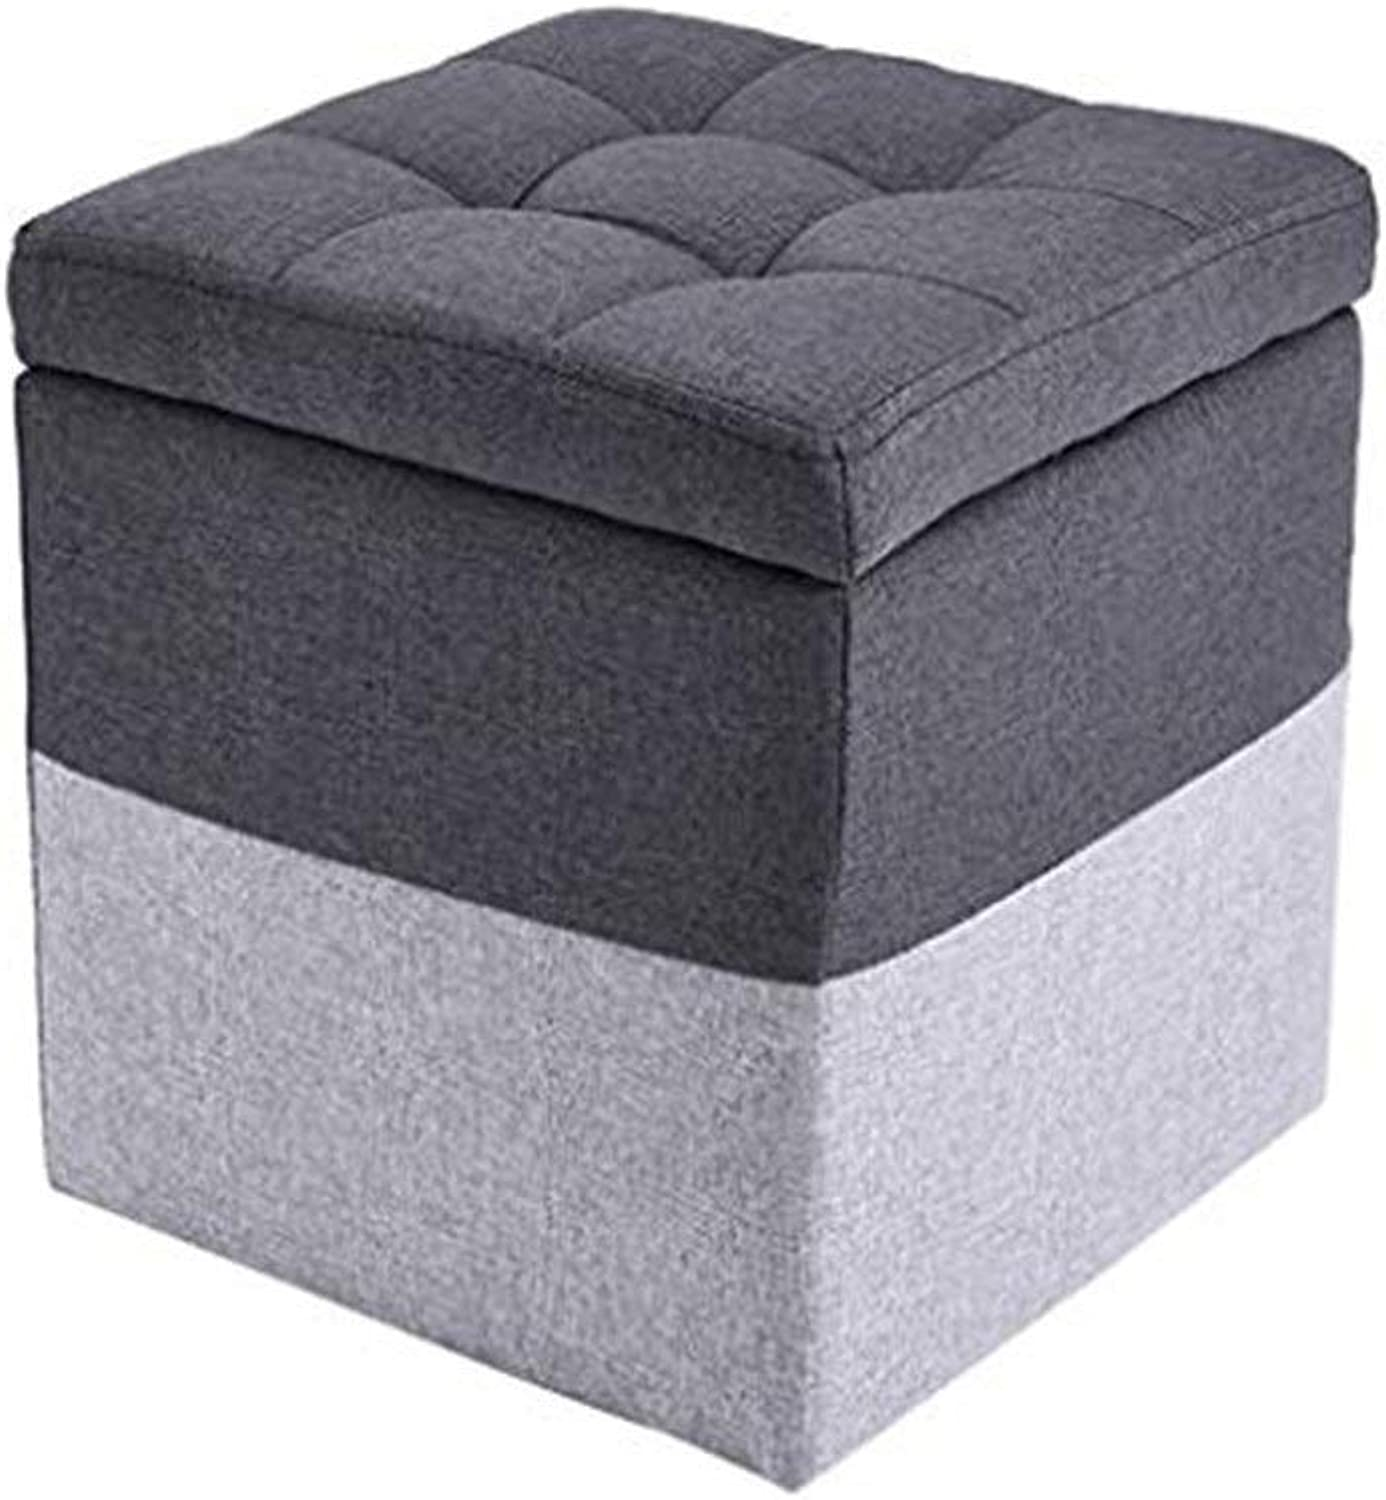 Footstool Change shoes Bench Sofa Stool Storage Stool Household Living Room Cloth Stool,30X30X30CM GFMING (color   Black)